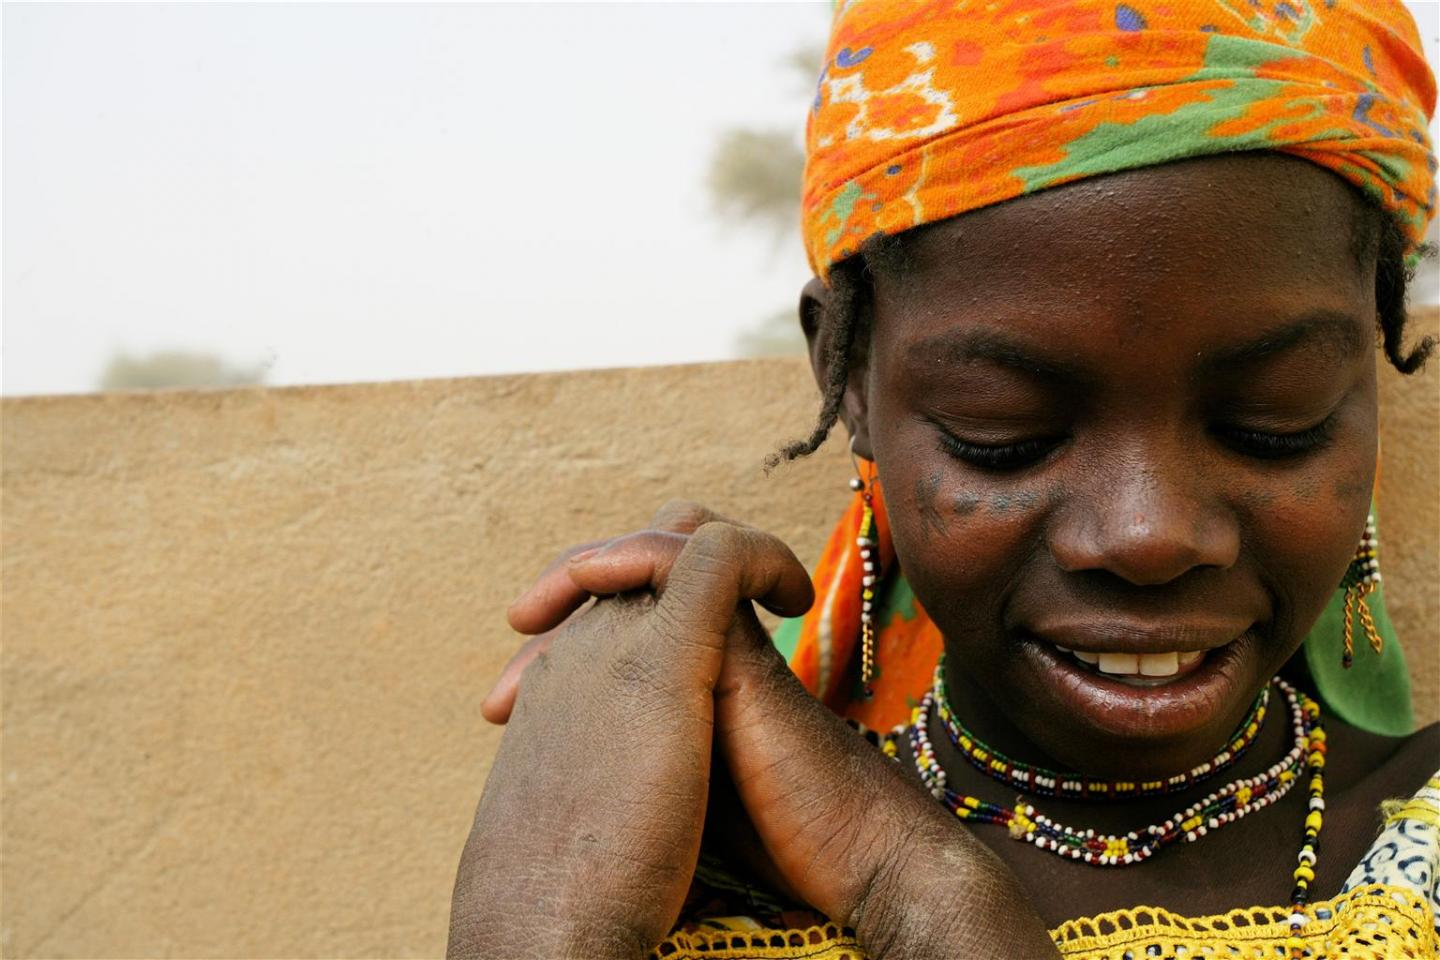 In 2007 in Niger, a girl smiles in the city of Agadez, capital of Agadez Region. She is a member of the Fulani ethnic group.